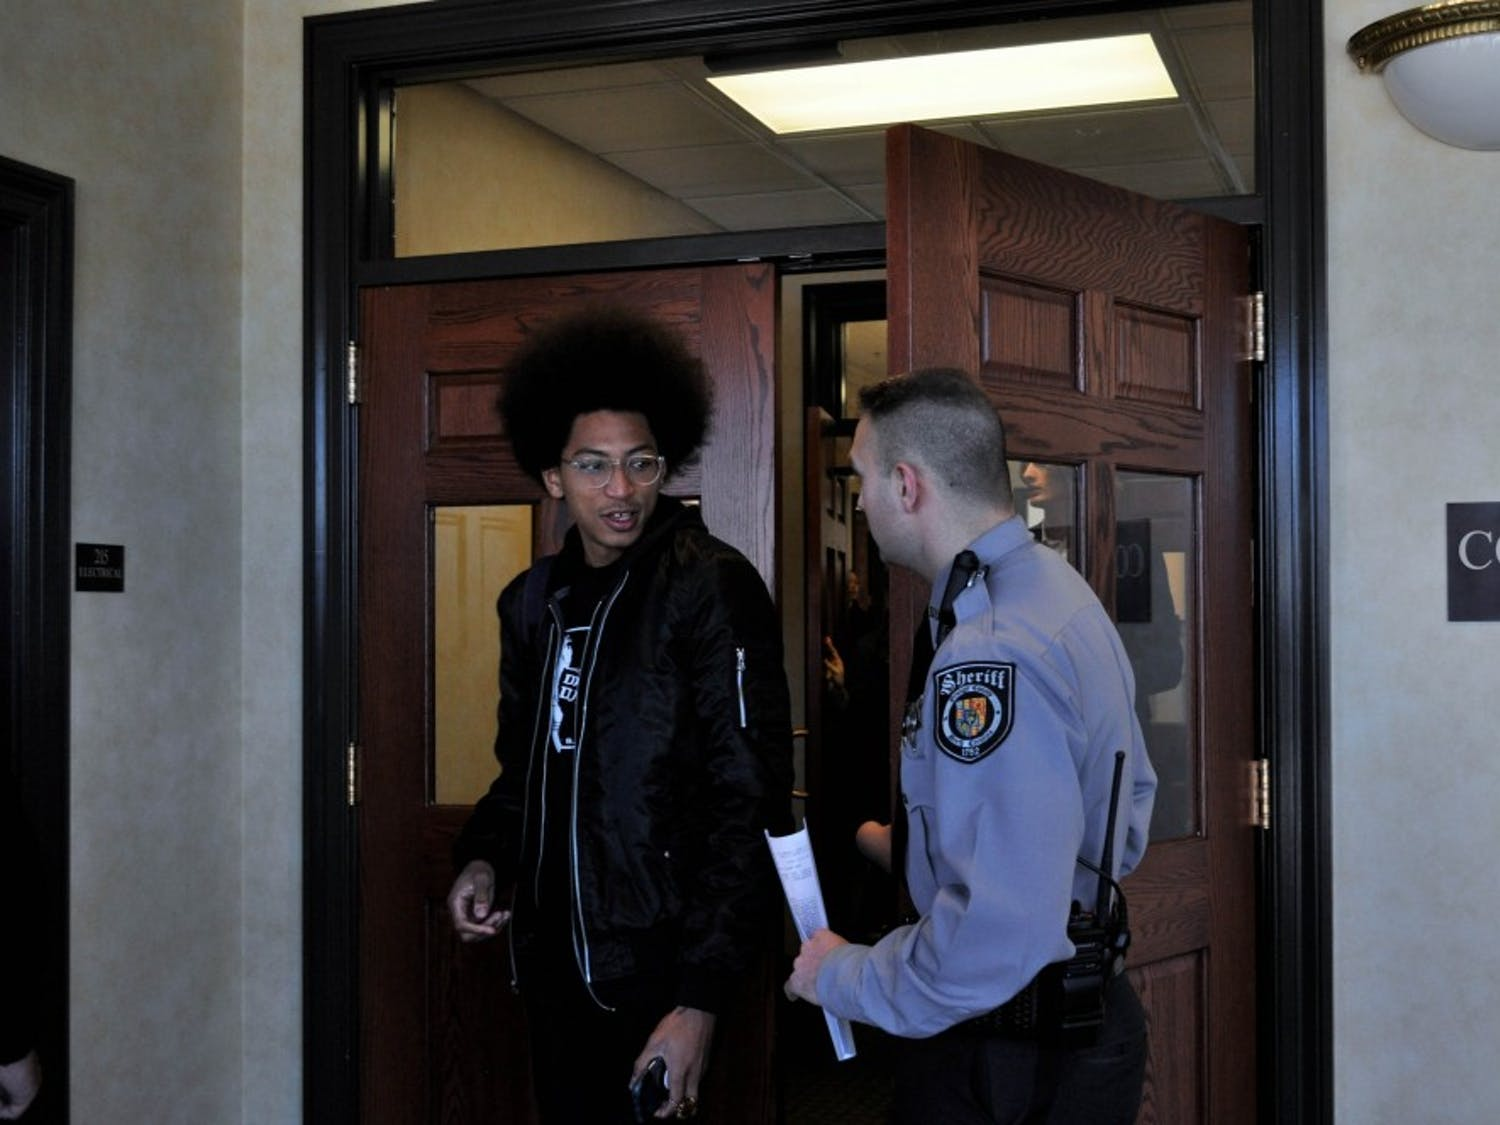 Jonathan Fitzgerald Fuller exits Courtroom 4 at the Orange County Courthouse in Hillsborough on Friday, Jan. 18, 2019. Fuller was one of several people charged with misdemeanor rioting and misdemeanor defacing a public monument following the toppling of Silent Sam on Aug. 20, 2018.